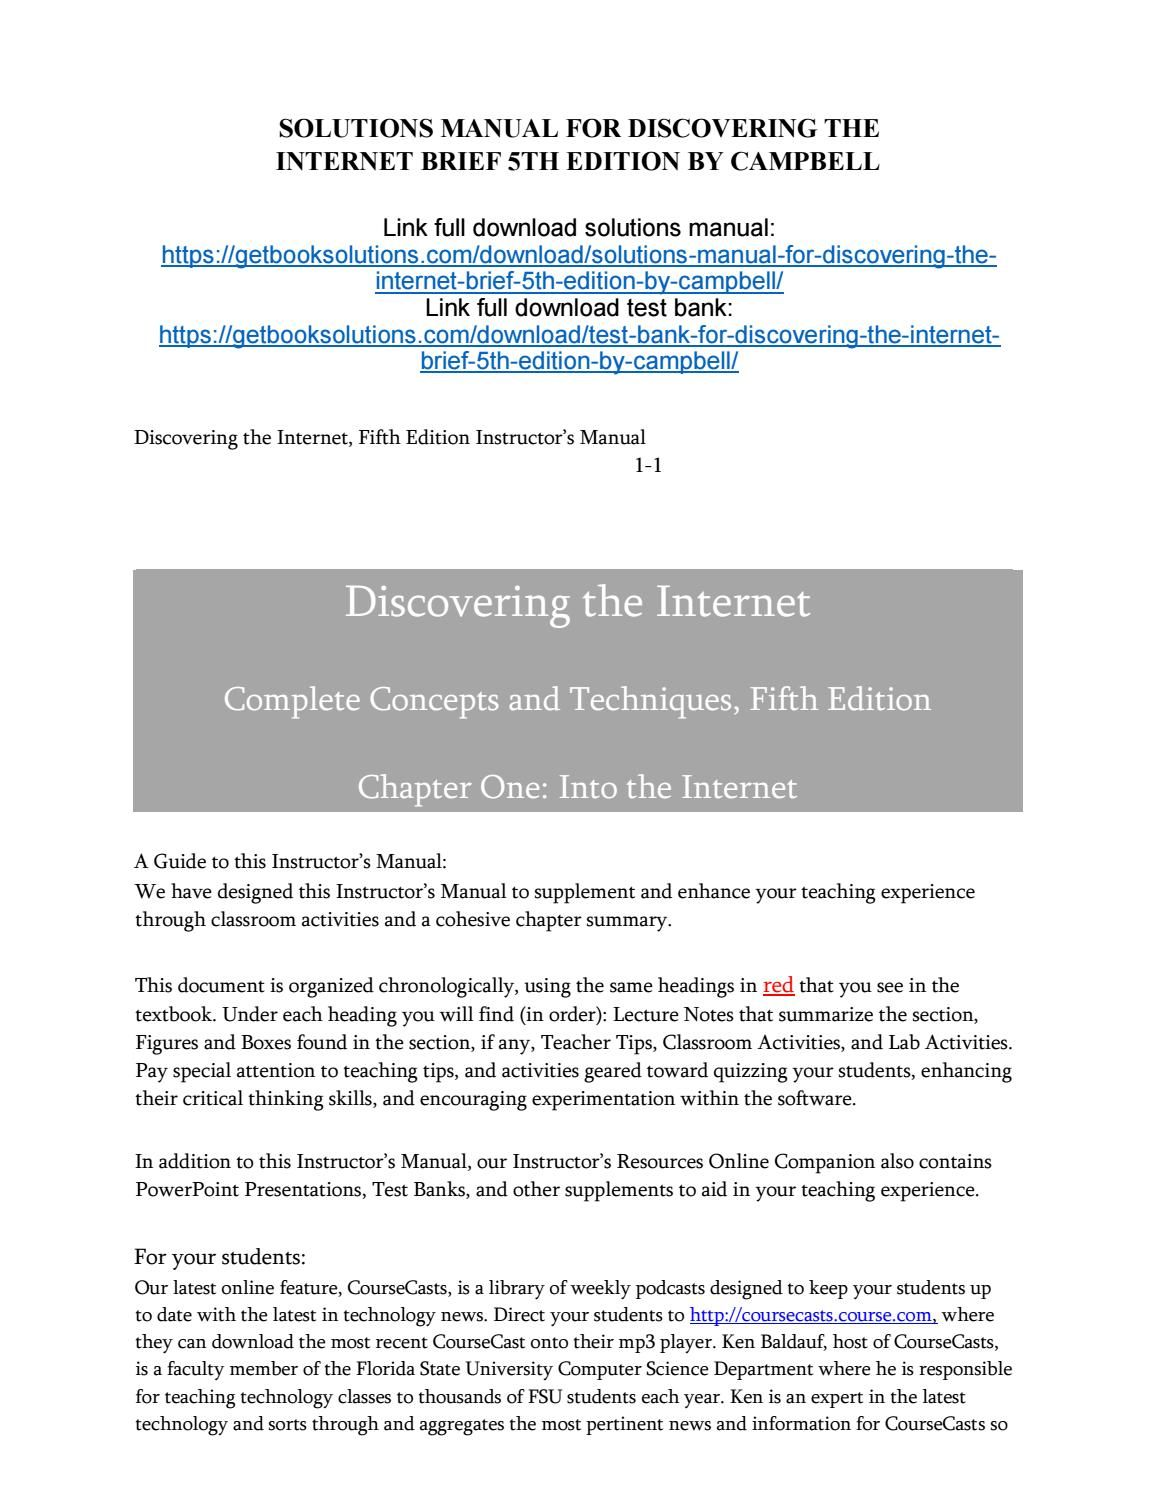 Solutions manual for discovering the internet brief 5th edition by campbell  Manual, Textbook, User